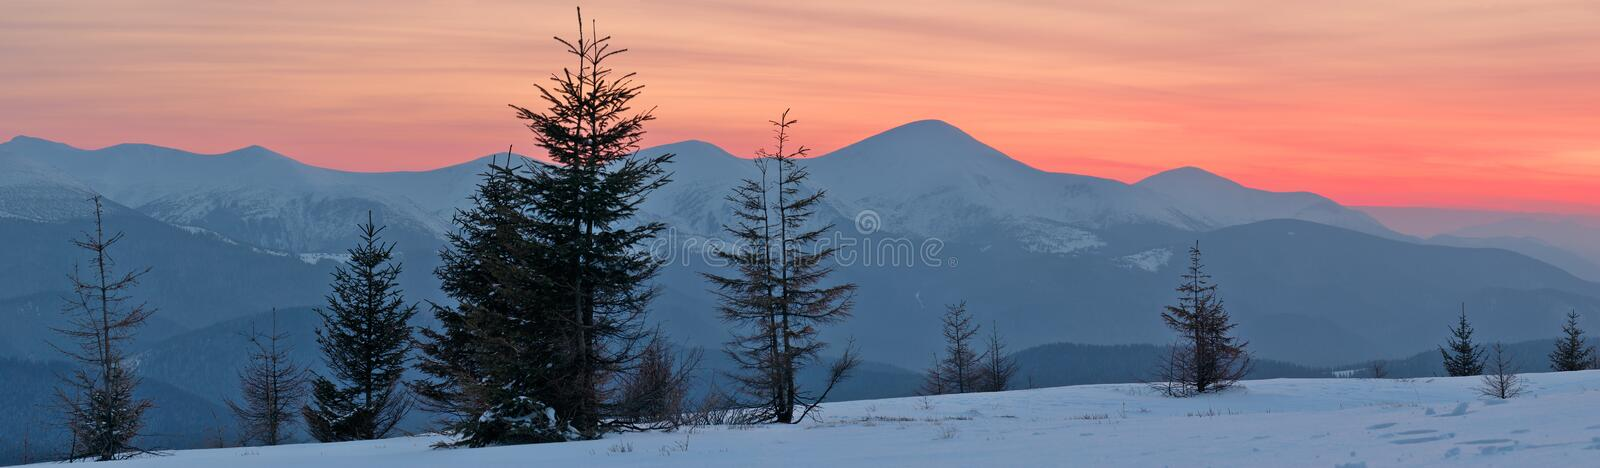 Winter Landscape at Sunset stock photo